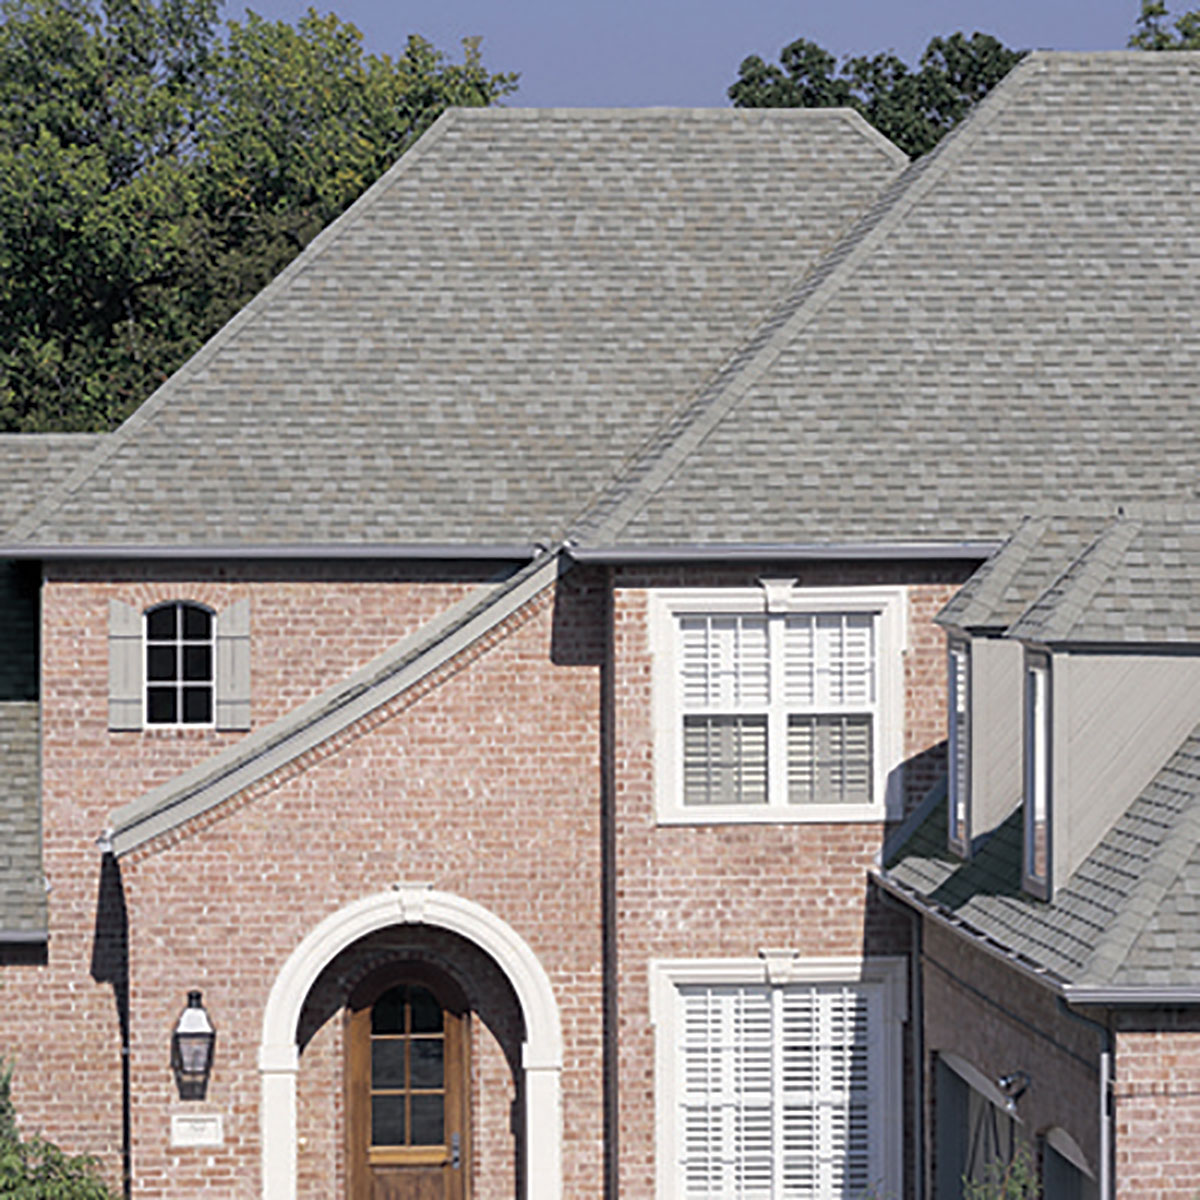 Beautiful Homes Start with Heritage Shingles: Heritage Shingles | Heritage Vintage Shingles | Wood Shakes